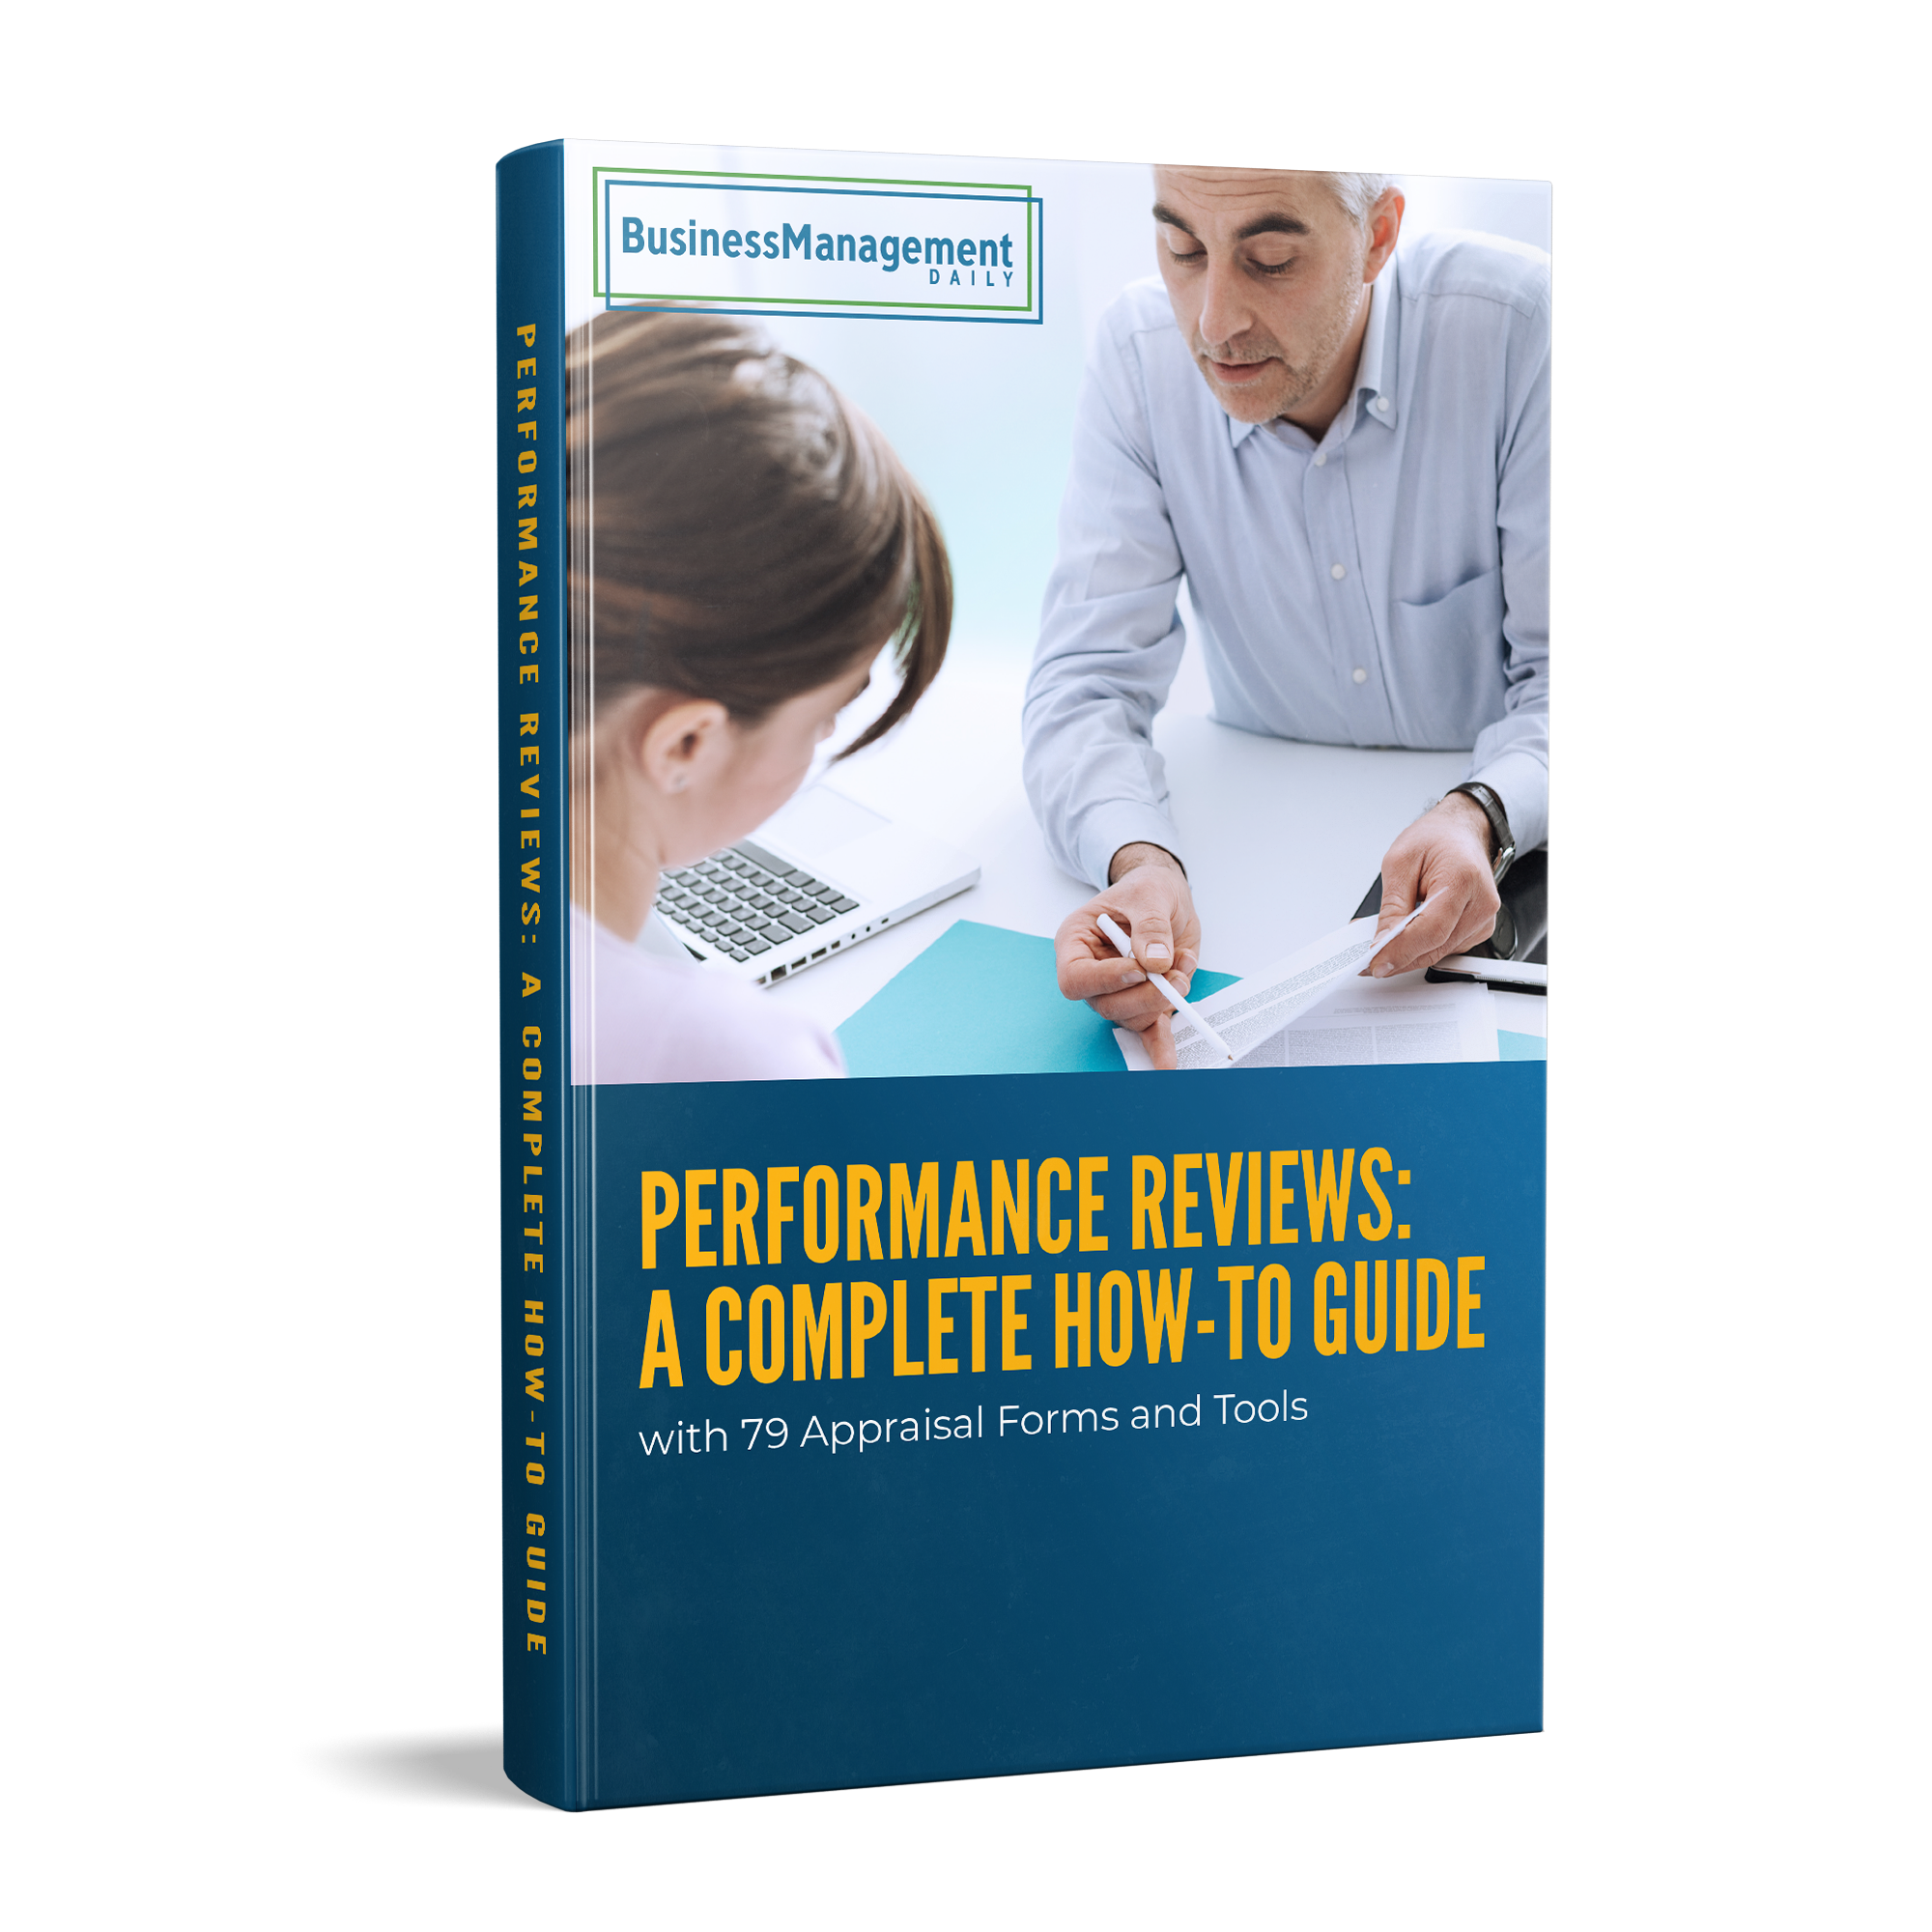 Performance Reviews: A complete how-to guide Book